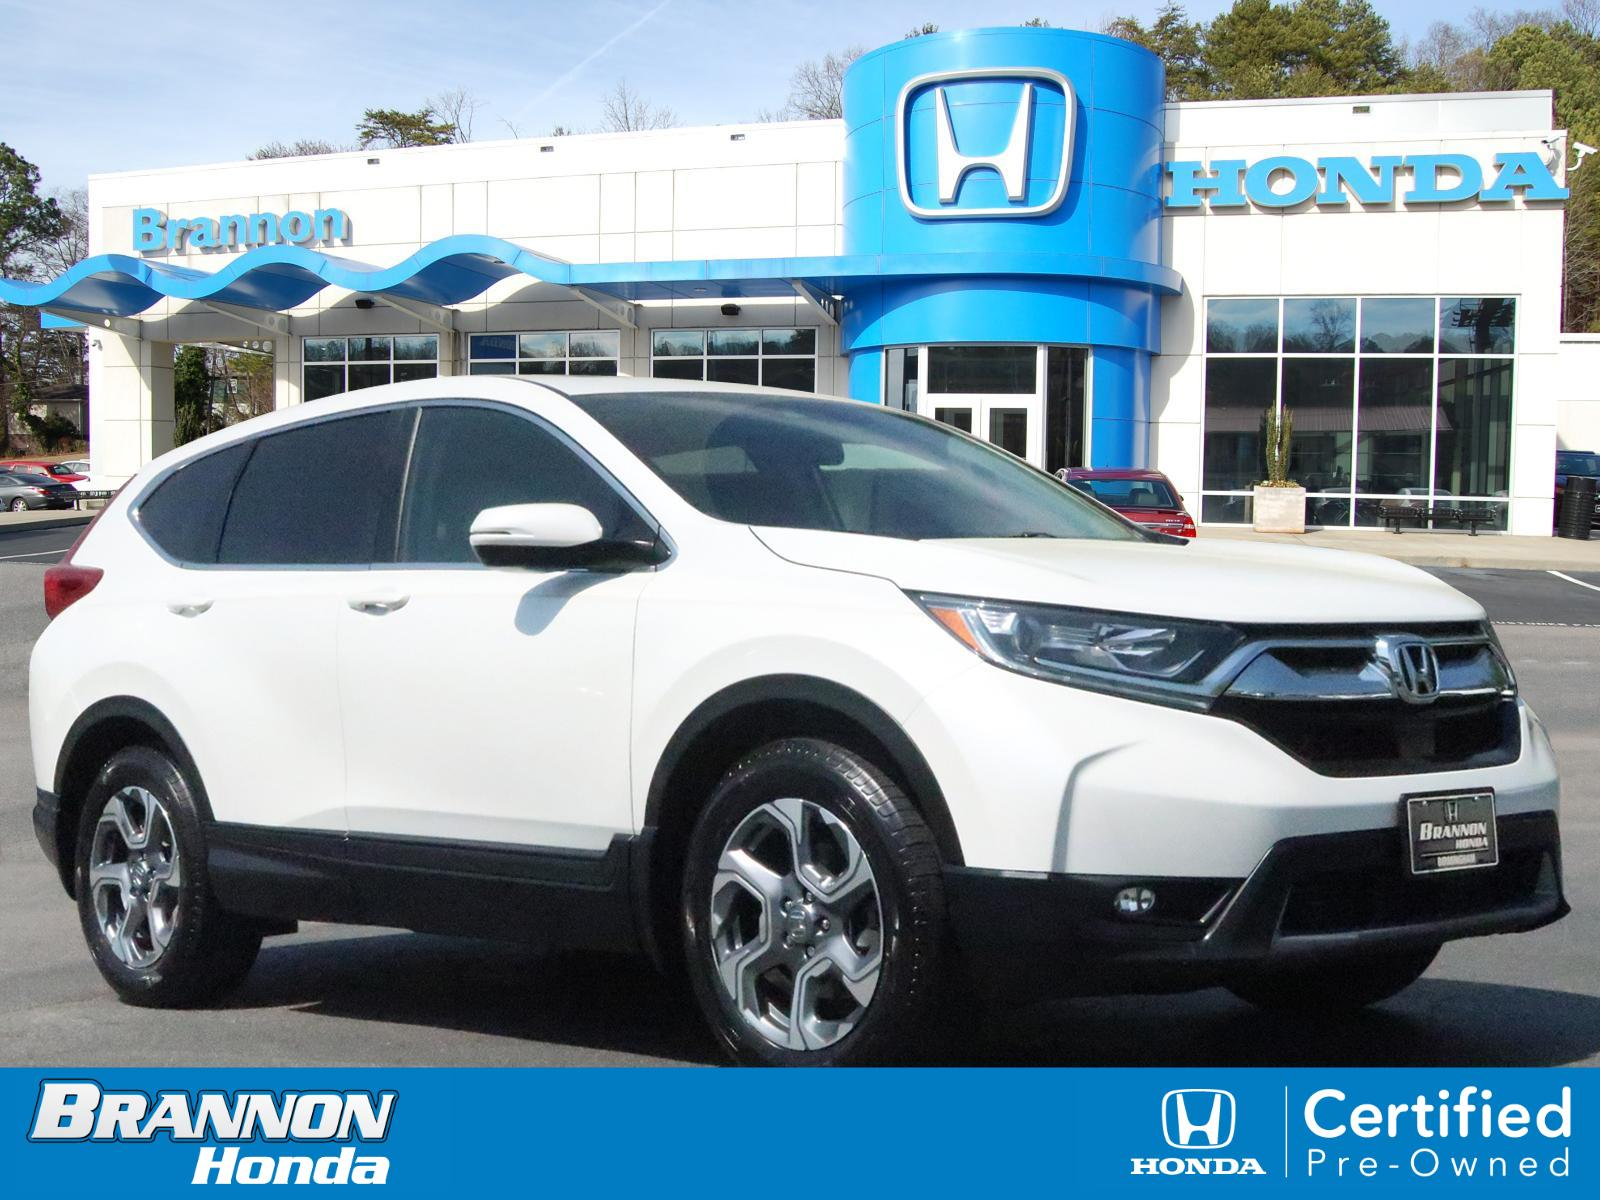 Certified Pre-Owned 2018 Honda CR-V EX-L 2WD